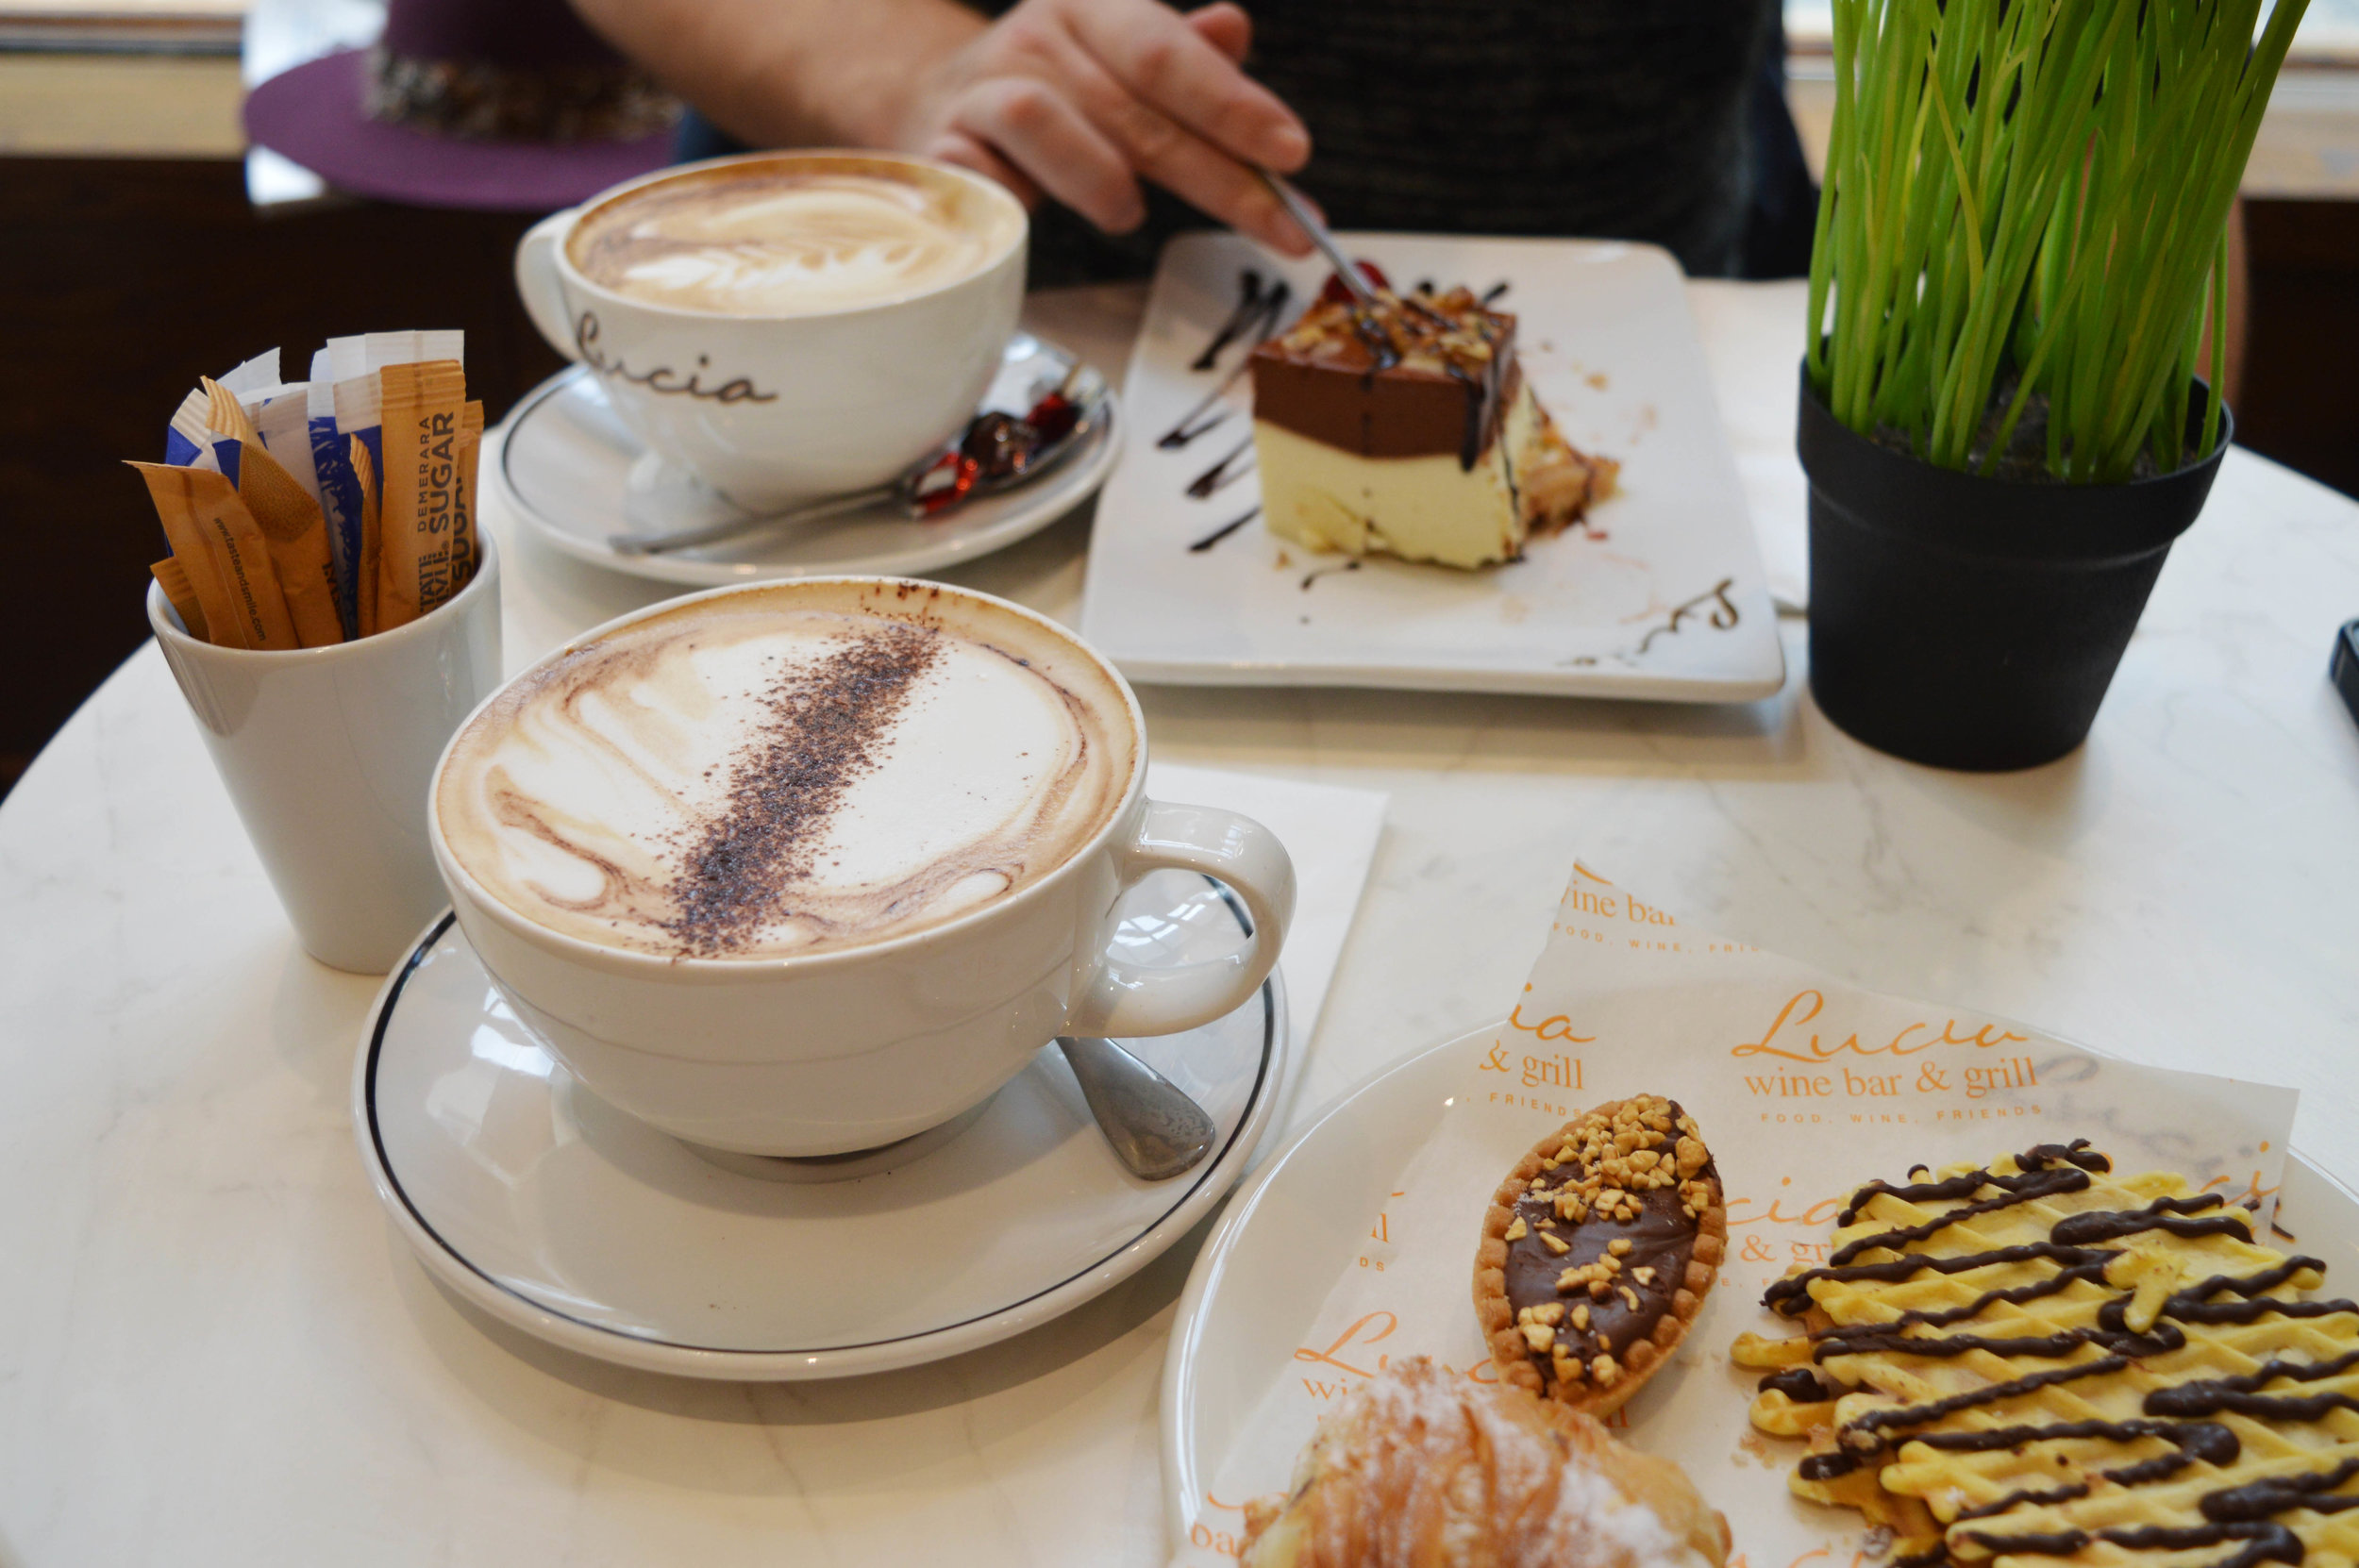 Coffee and cake at Lucia's patisserie York